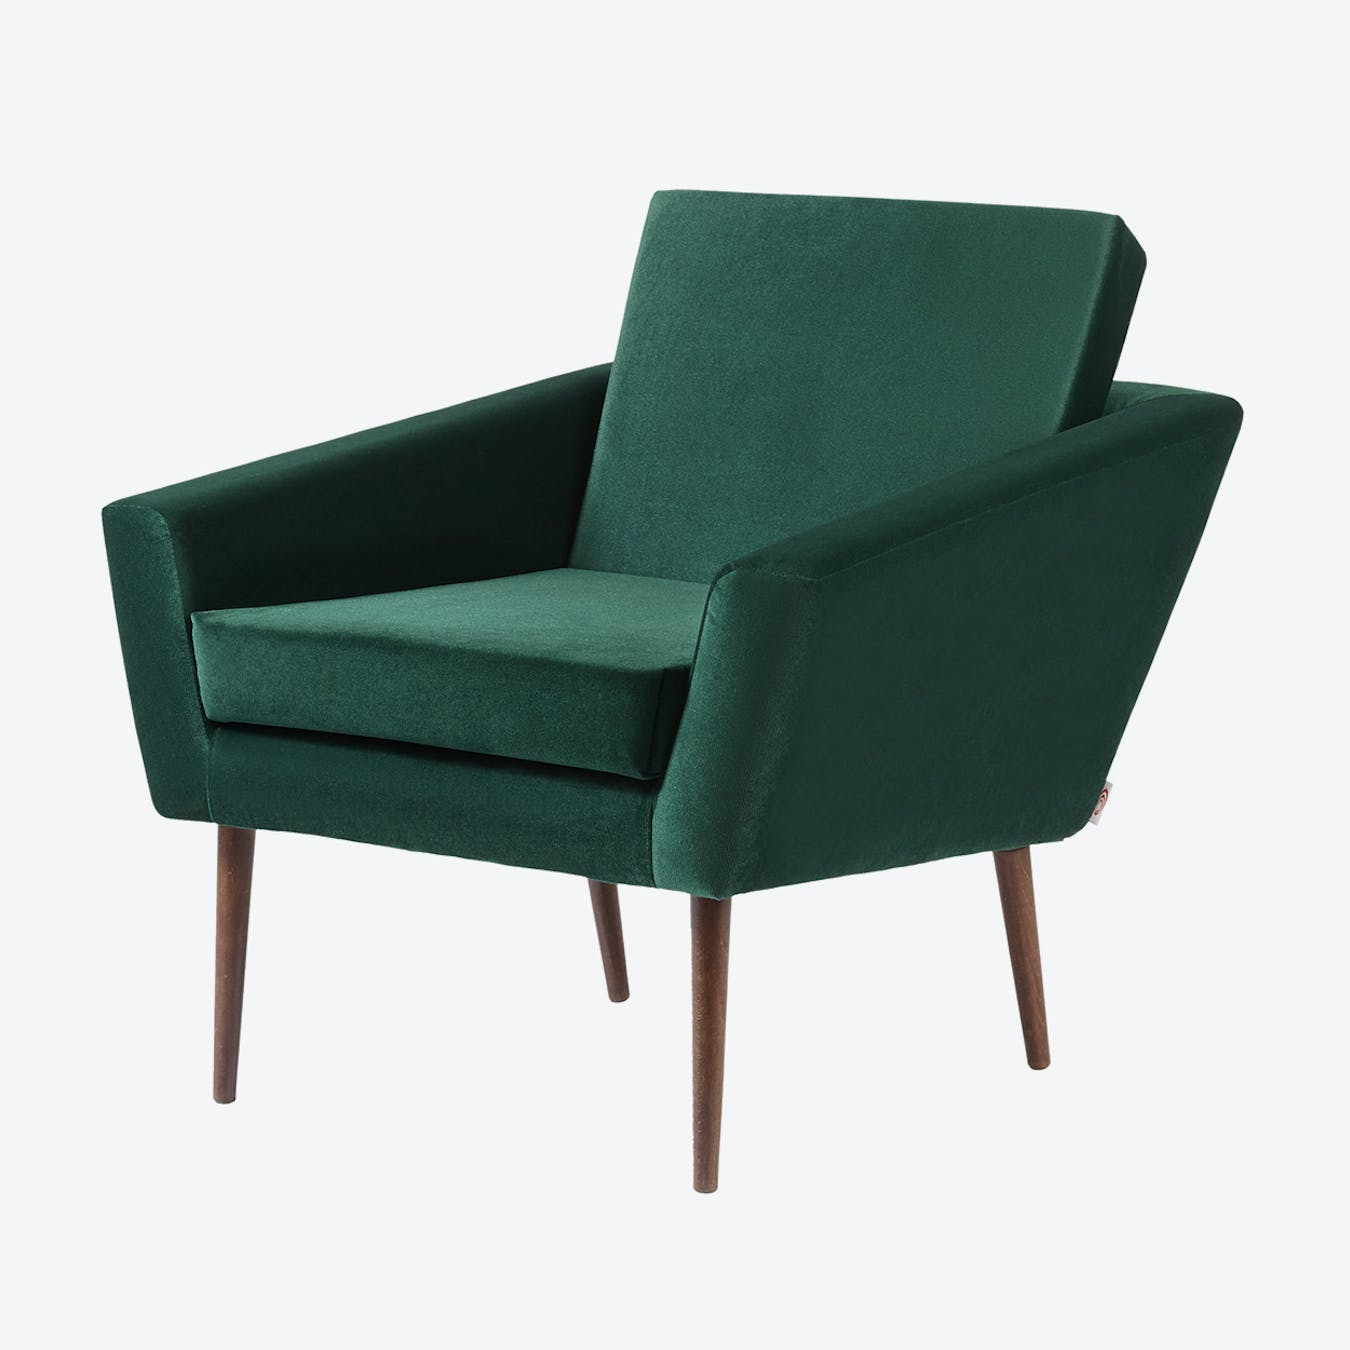 Supernova Chair - Velvet Line in Hunter Green